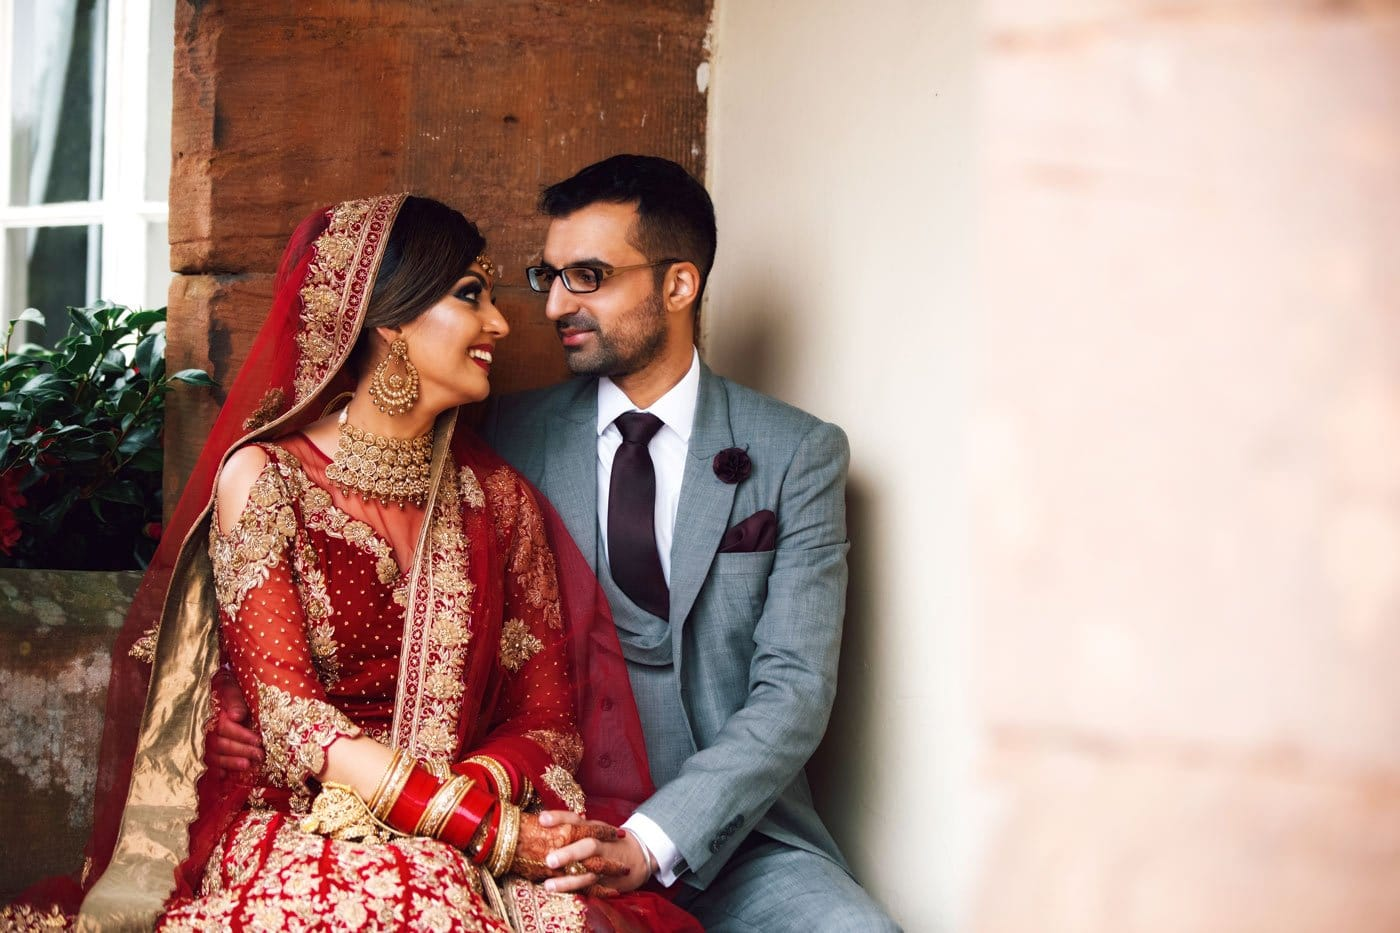 Indian Wedding Photography at Heart of England // Amandeep & Sandeep